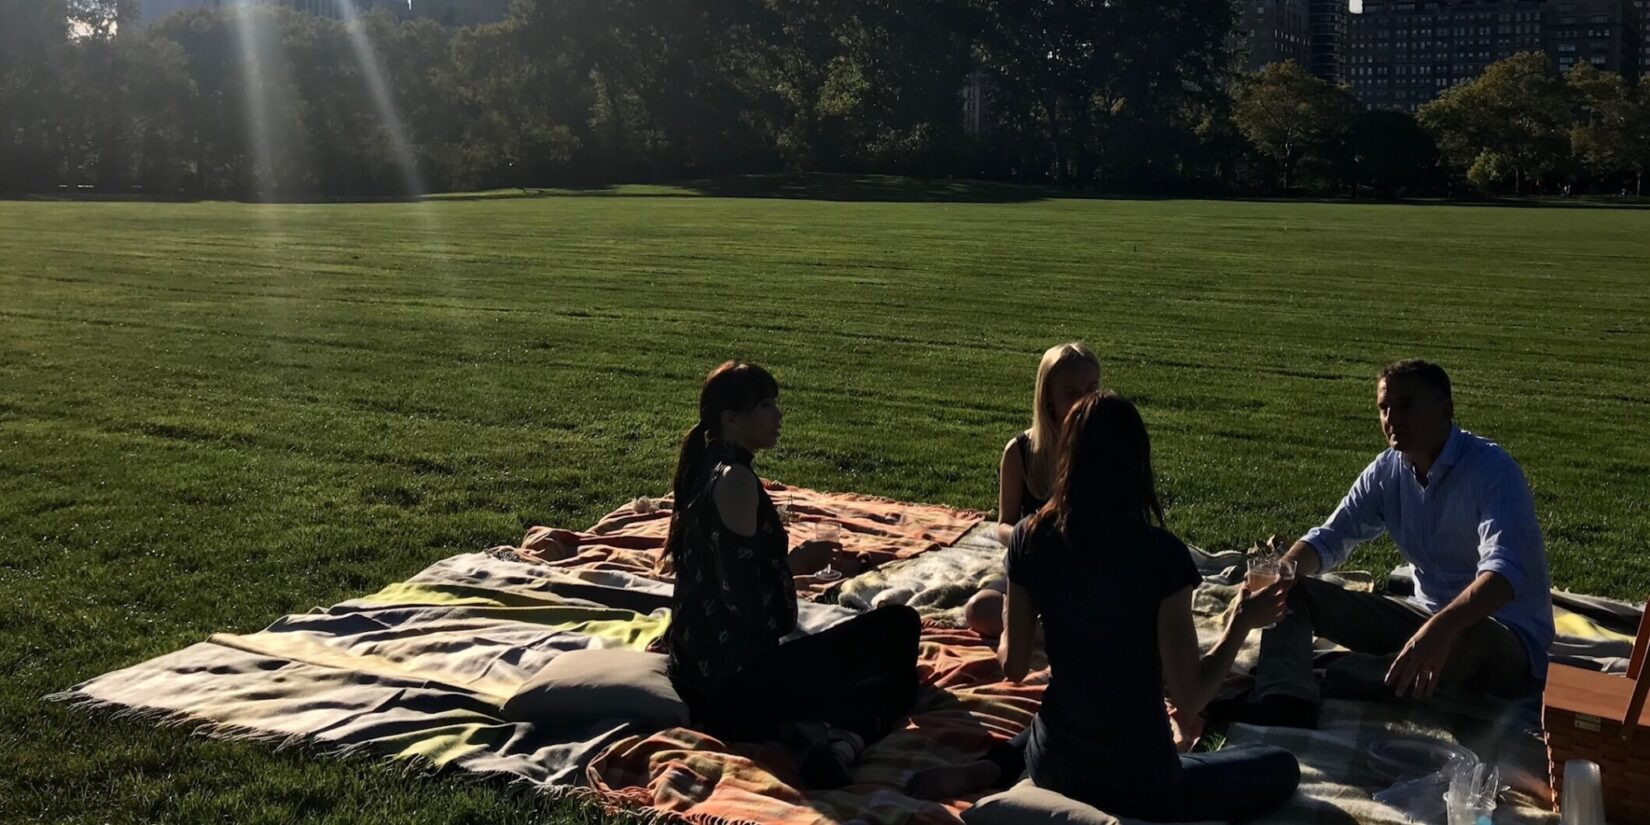 Phil Rosenthal and ballet dancers having a picnic on the Great Lawn